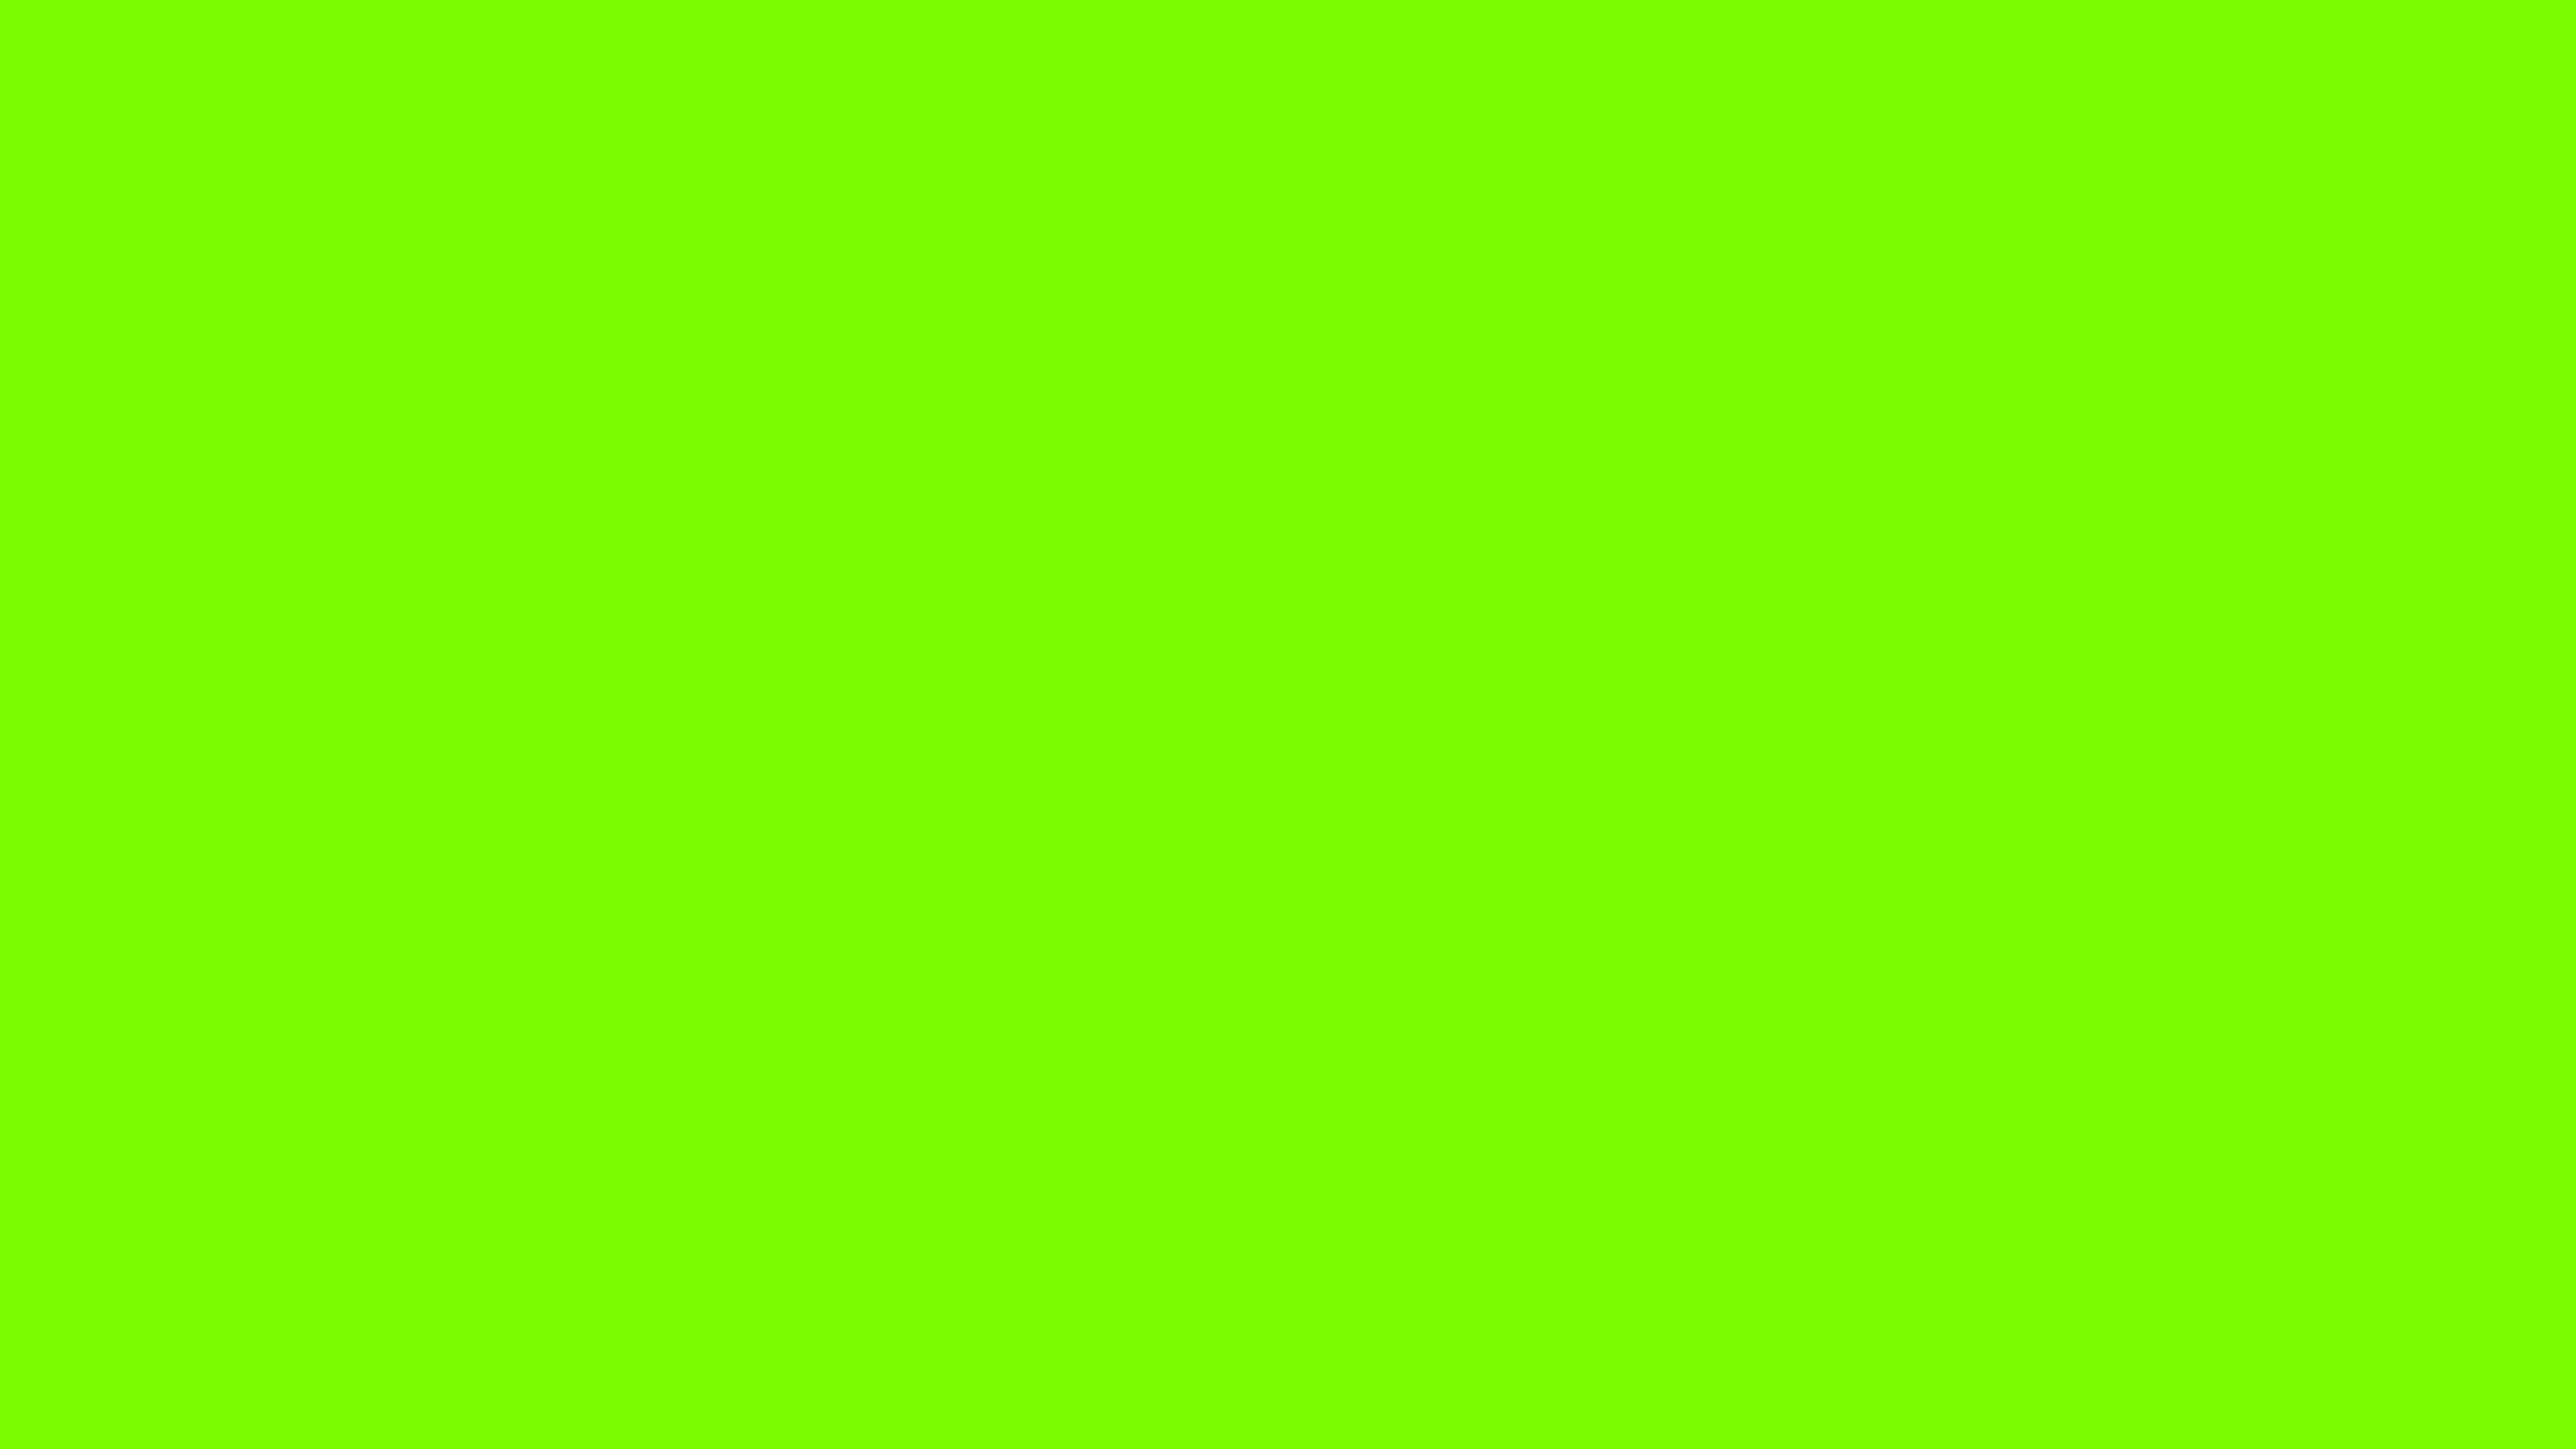 4096x2304 Lawn Green Solid Color Background